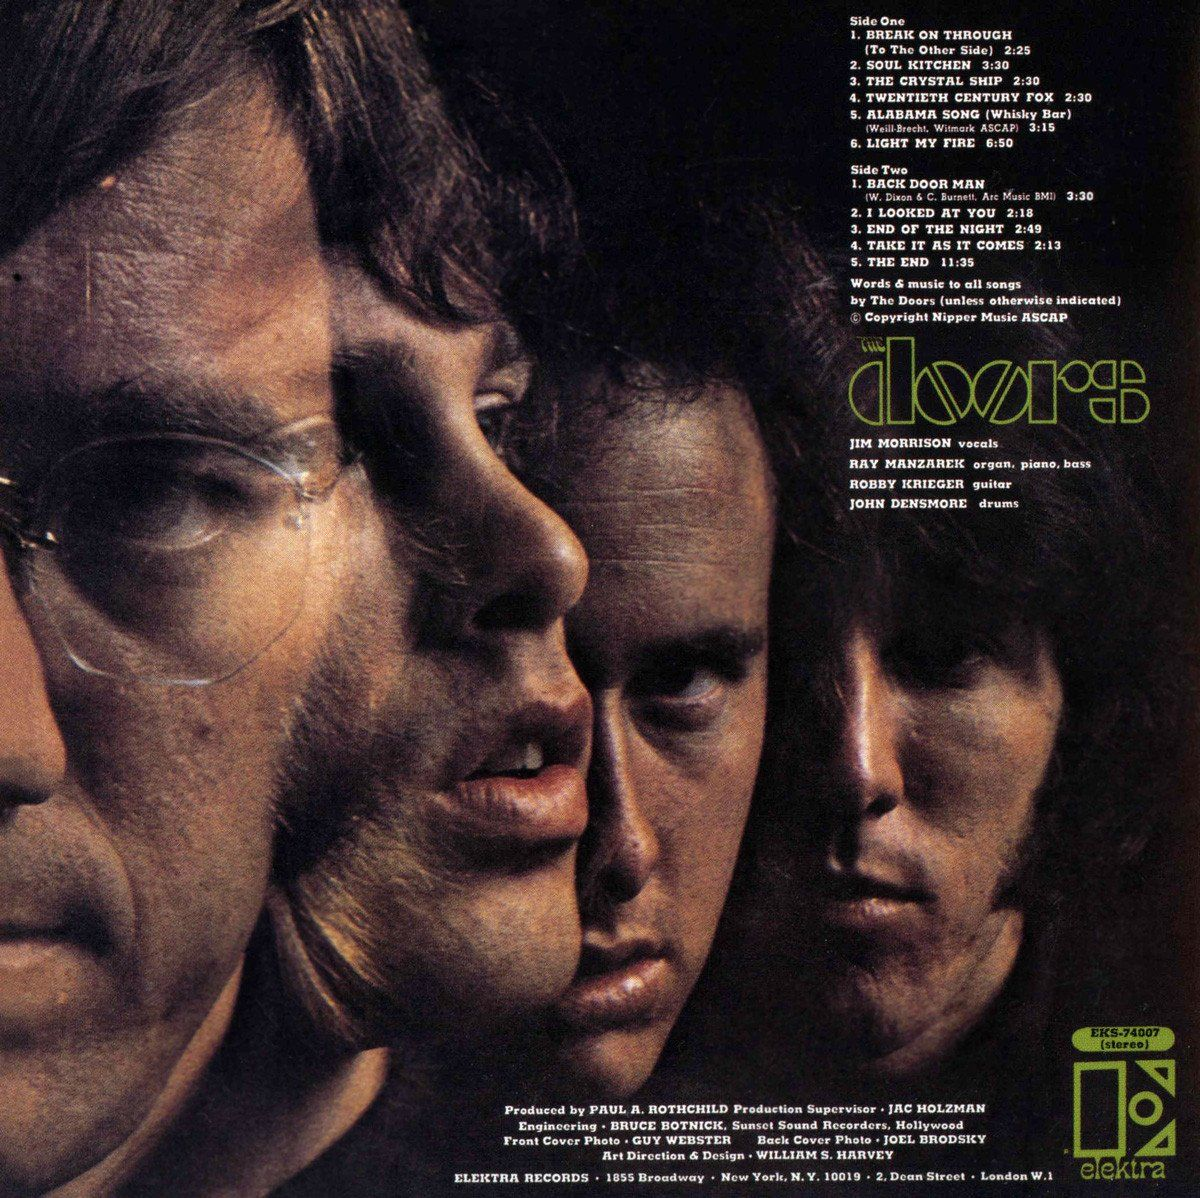 The Debut Album By The American Rock Band The Doors Originally Released In Significantly Different Stereo And Jim Morrison Alabama Song The Doors Jim Morrison